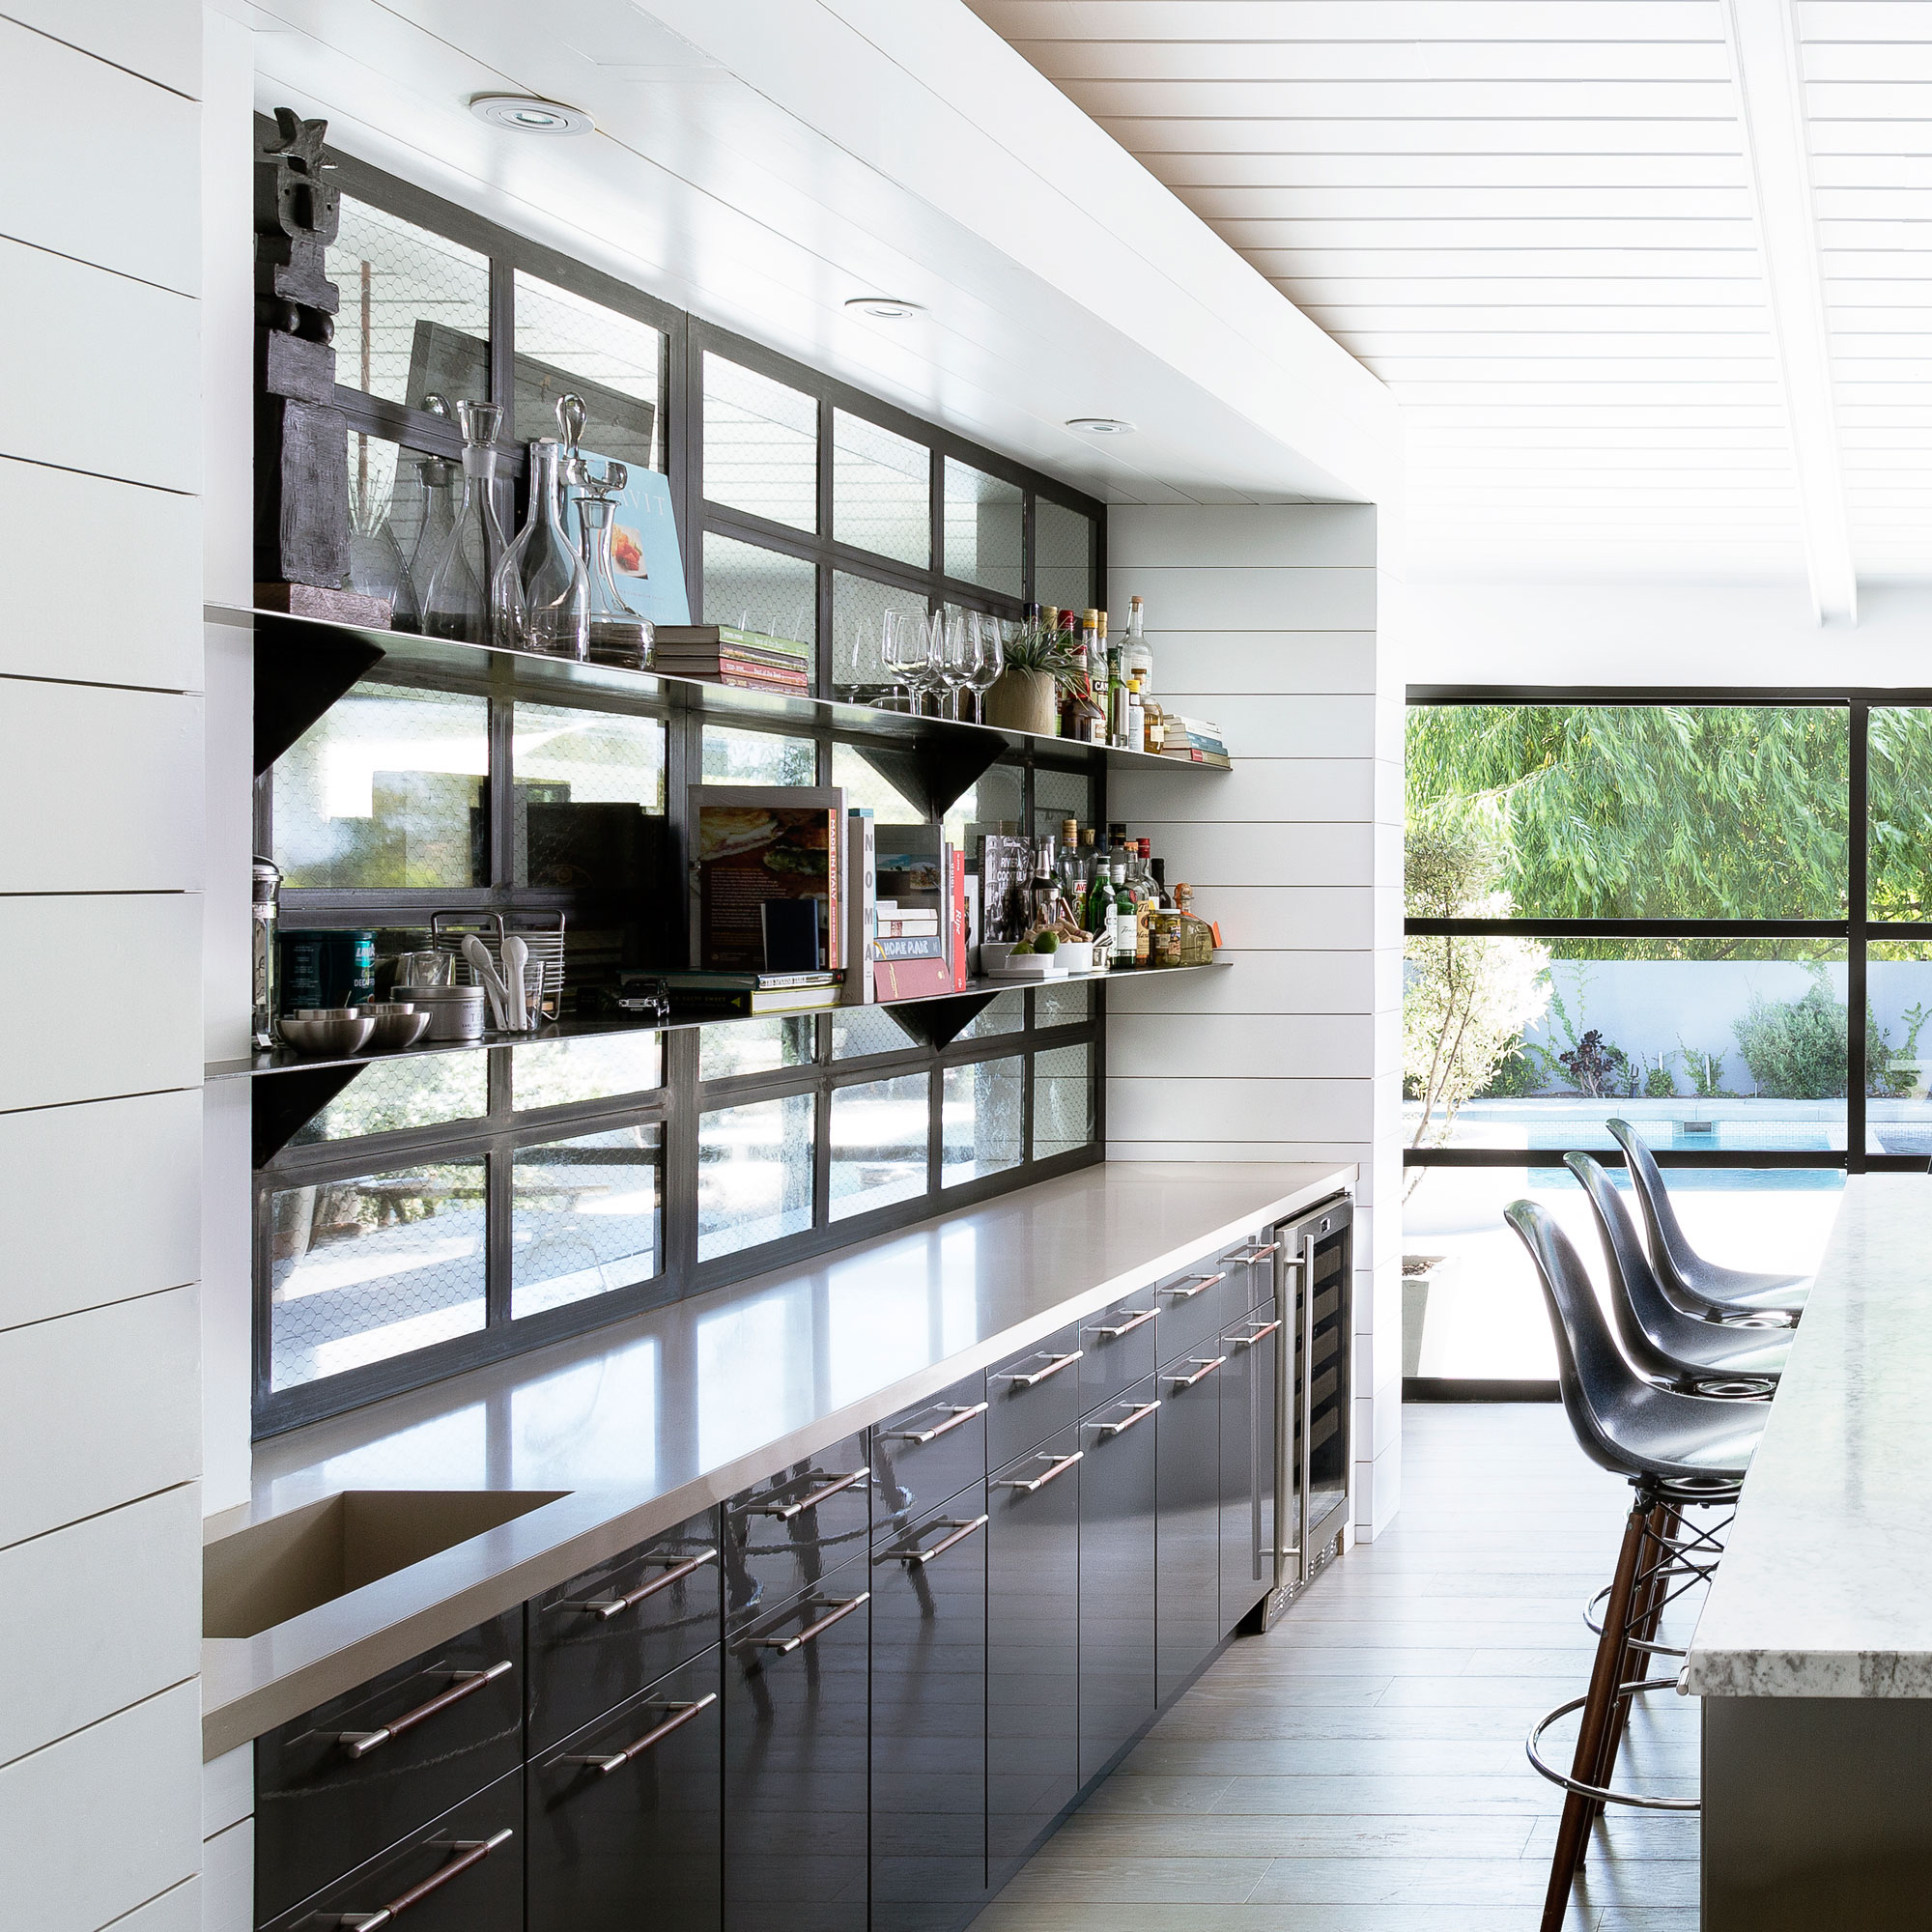 Sunset Magazine Kitchen Design Top 15 Kitchen Trends To Try Now Sunset Magazine